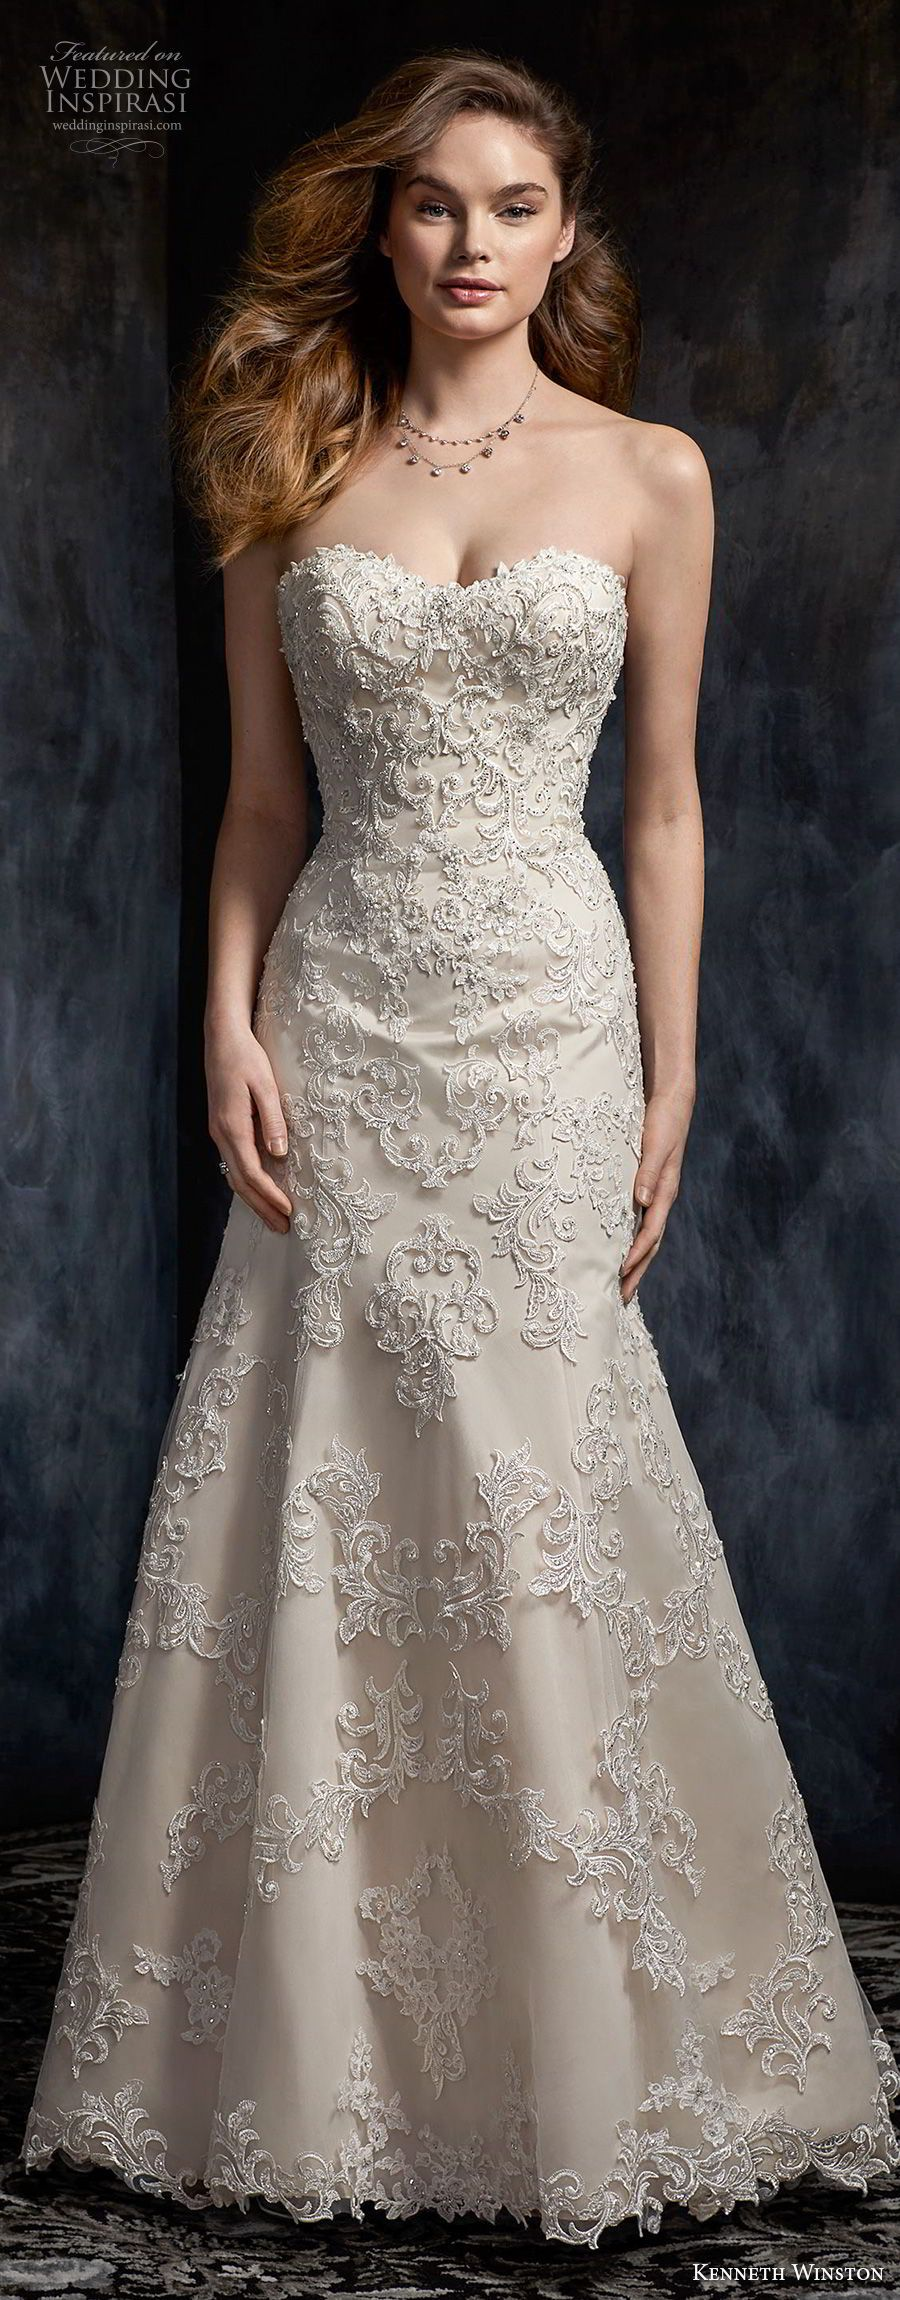 kenneth winston fall 2017 bridal sleeveless embroidered